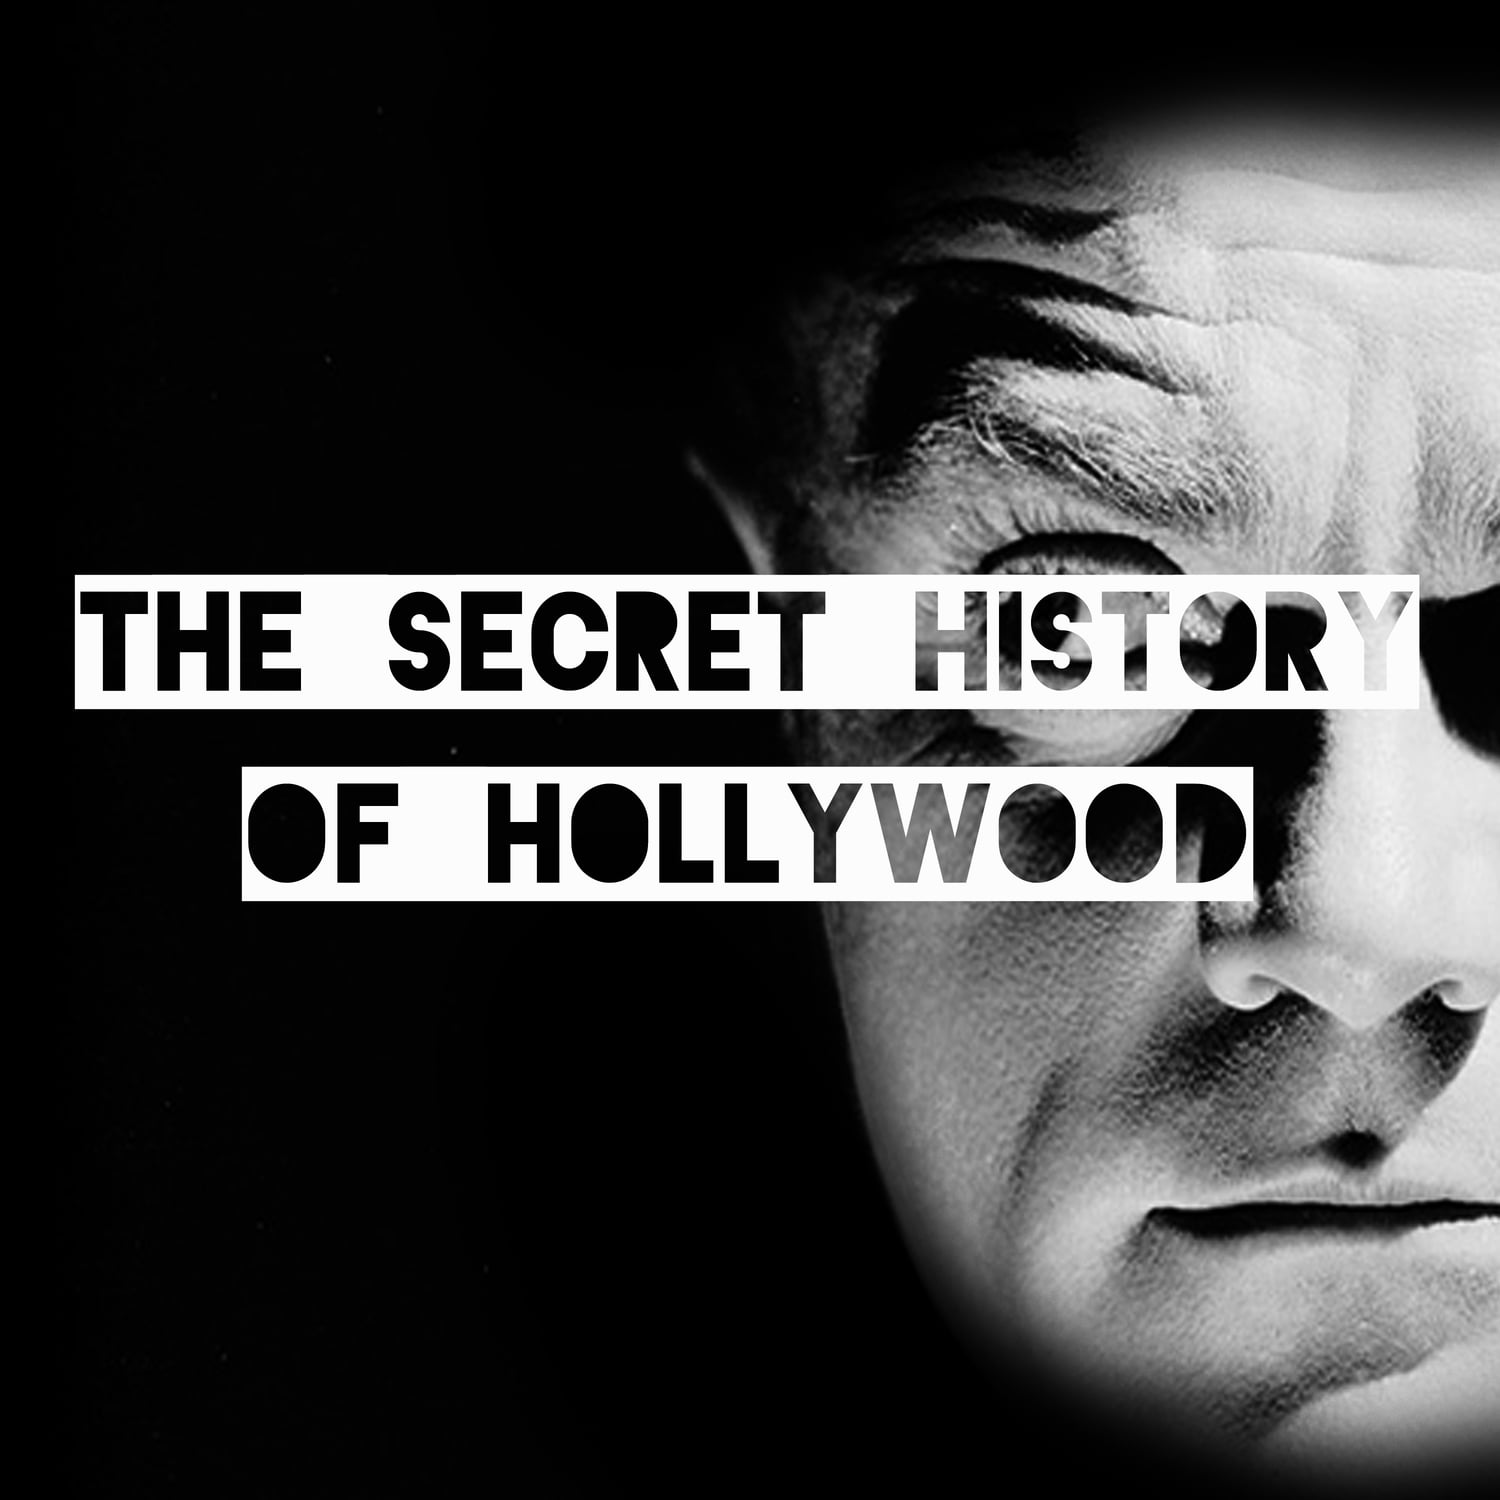 The Secret History Of Hollywood - A Modern Guide To The Golden Age Of Cinema